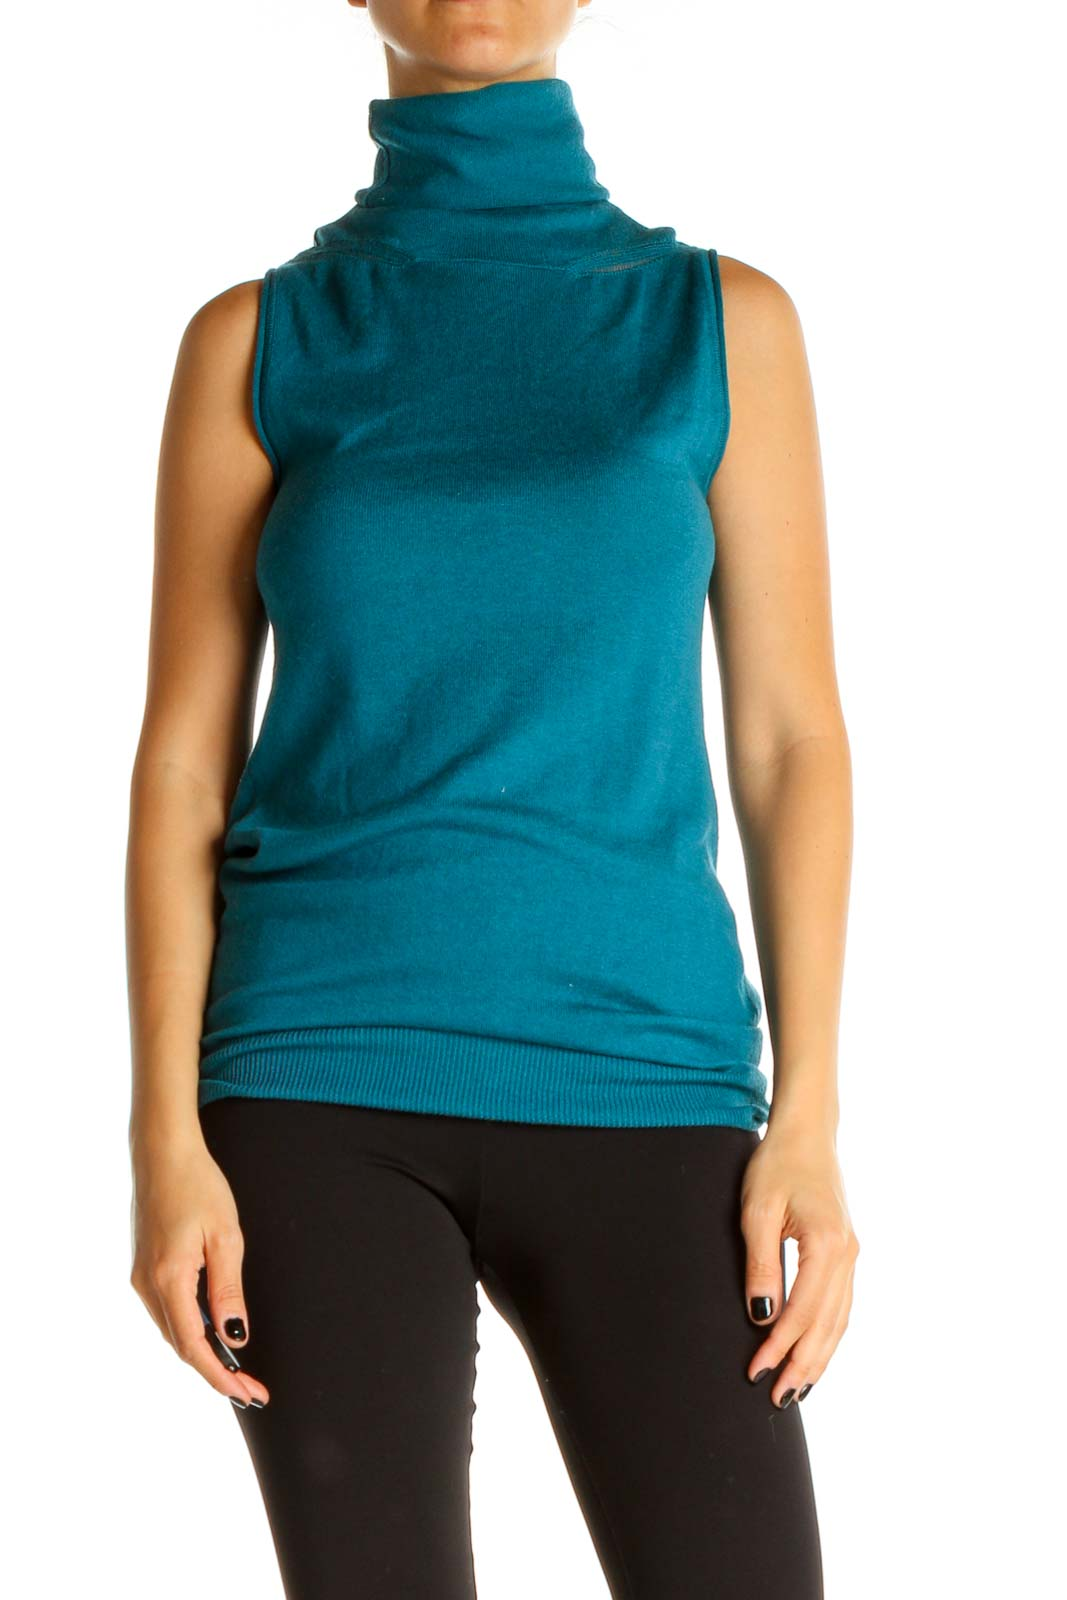 Blue Solid Casual Sleeveless Sweater Front